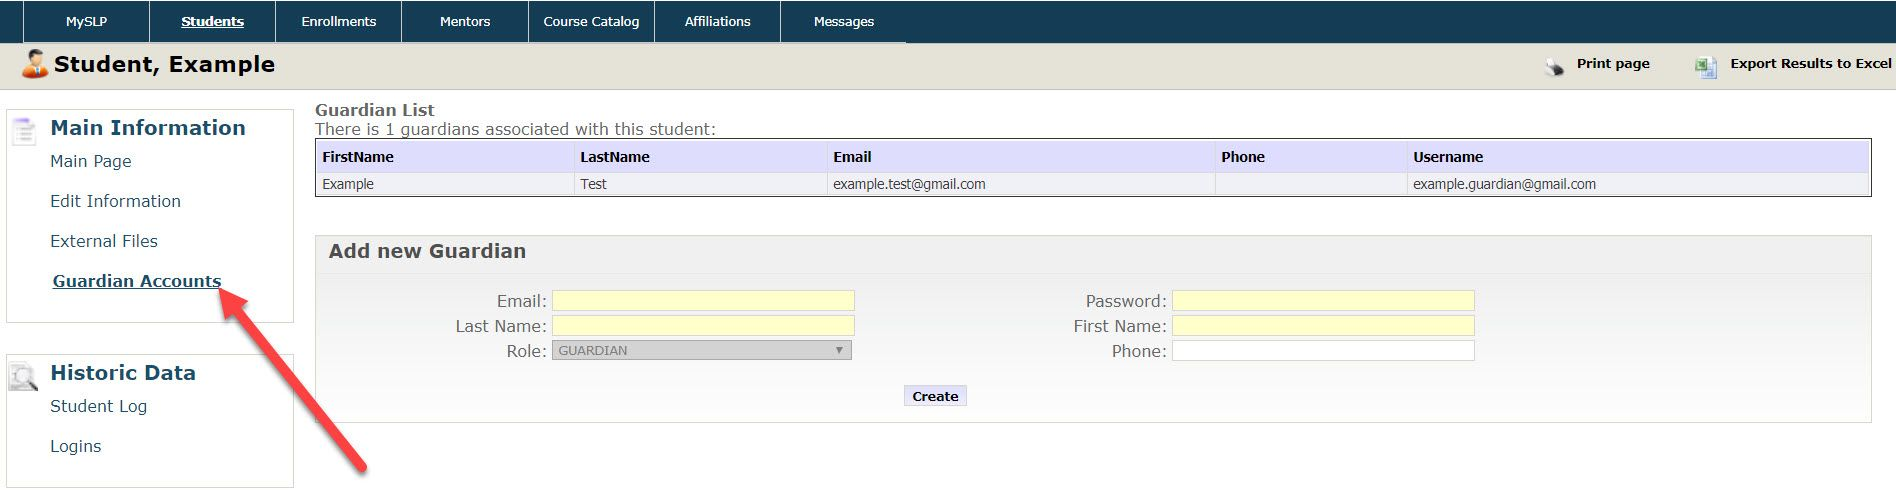 """The Guardian Accounts page displays the Guardian list in a table format. The columns include, first name, last name, email, phone and username. There is one row displayed with example data that is associated with the example student. Below the table there is an """"Add New Guardian"""" section which includes email, password, first name, last name, Role, and phone number fields. A create button is shown just below."""